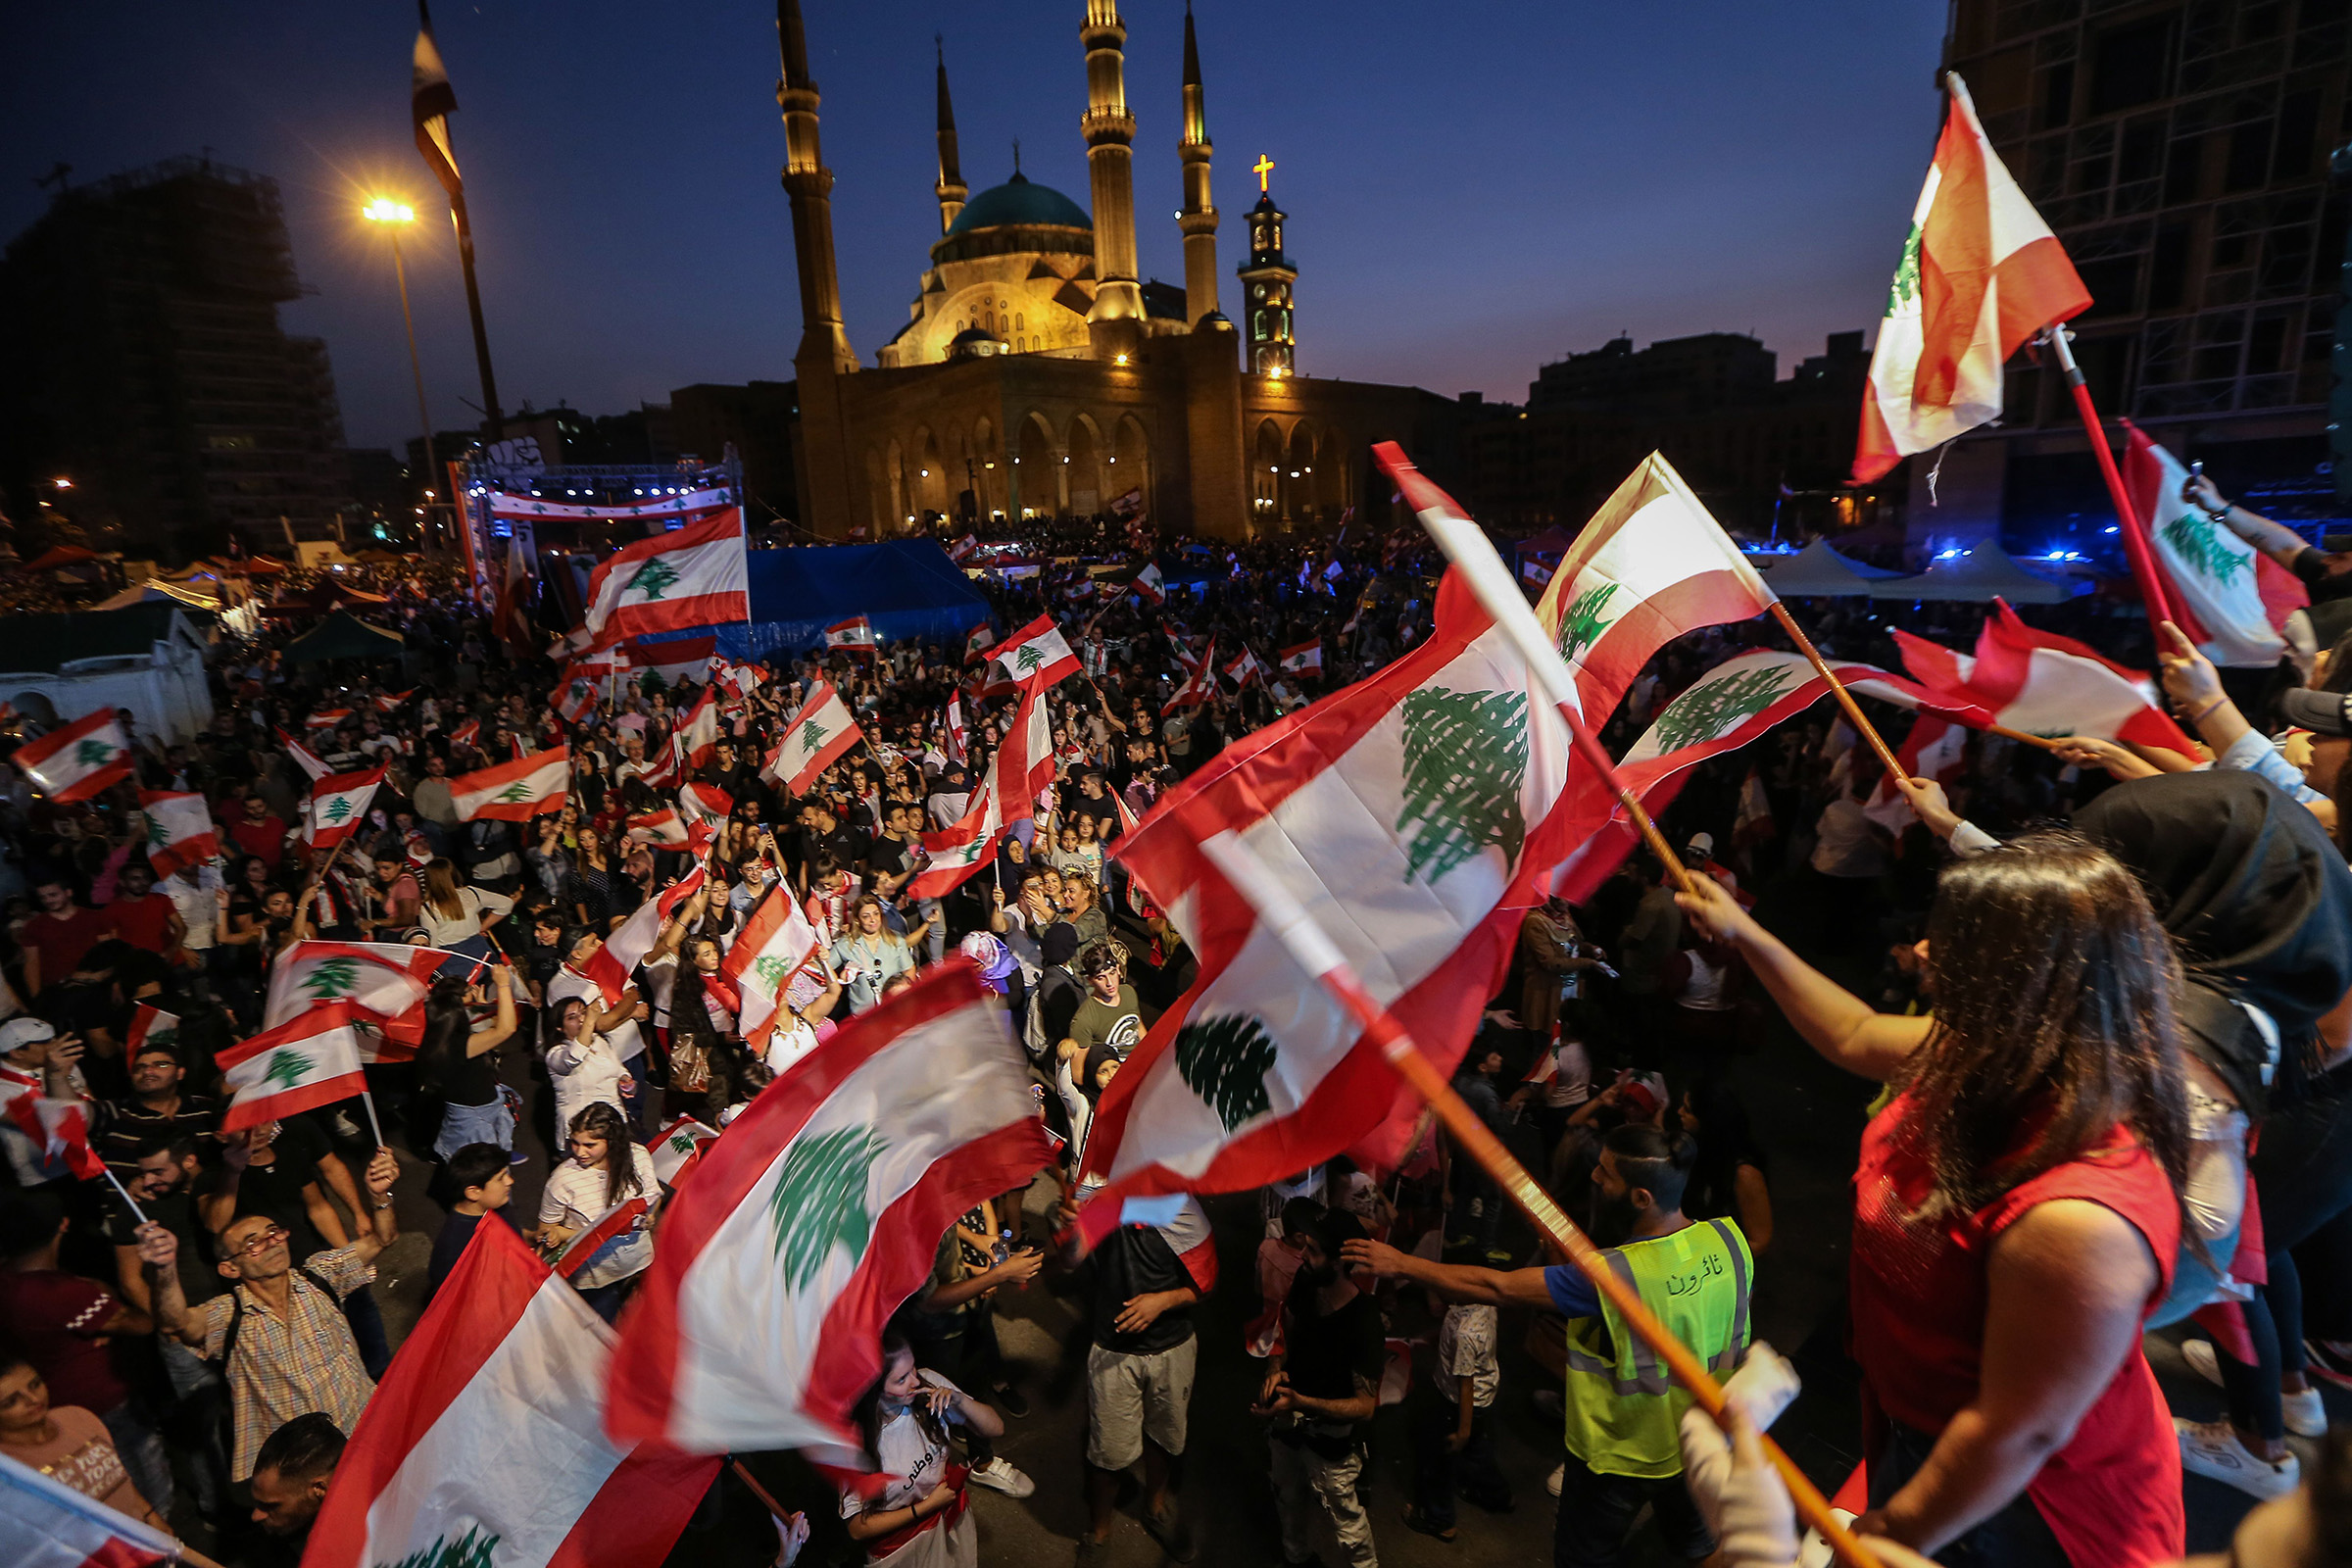 Protesters carry placards, wave Lebanese flags, and shout anti-government slogans during a protest in Martyrs' Square in downtown Beirut, Lebanon, on Oct.27, 2019.